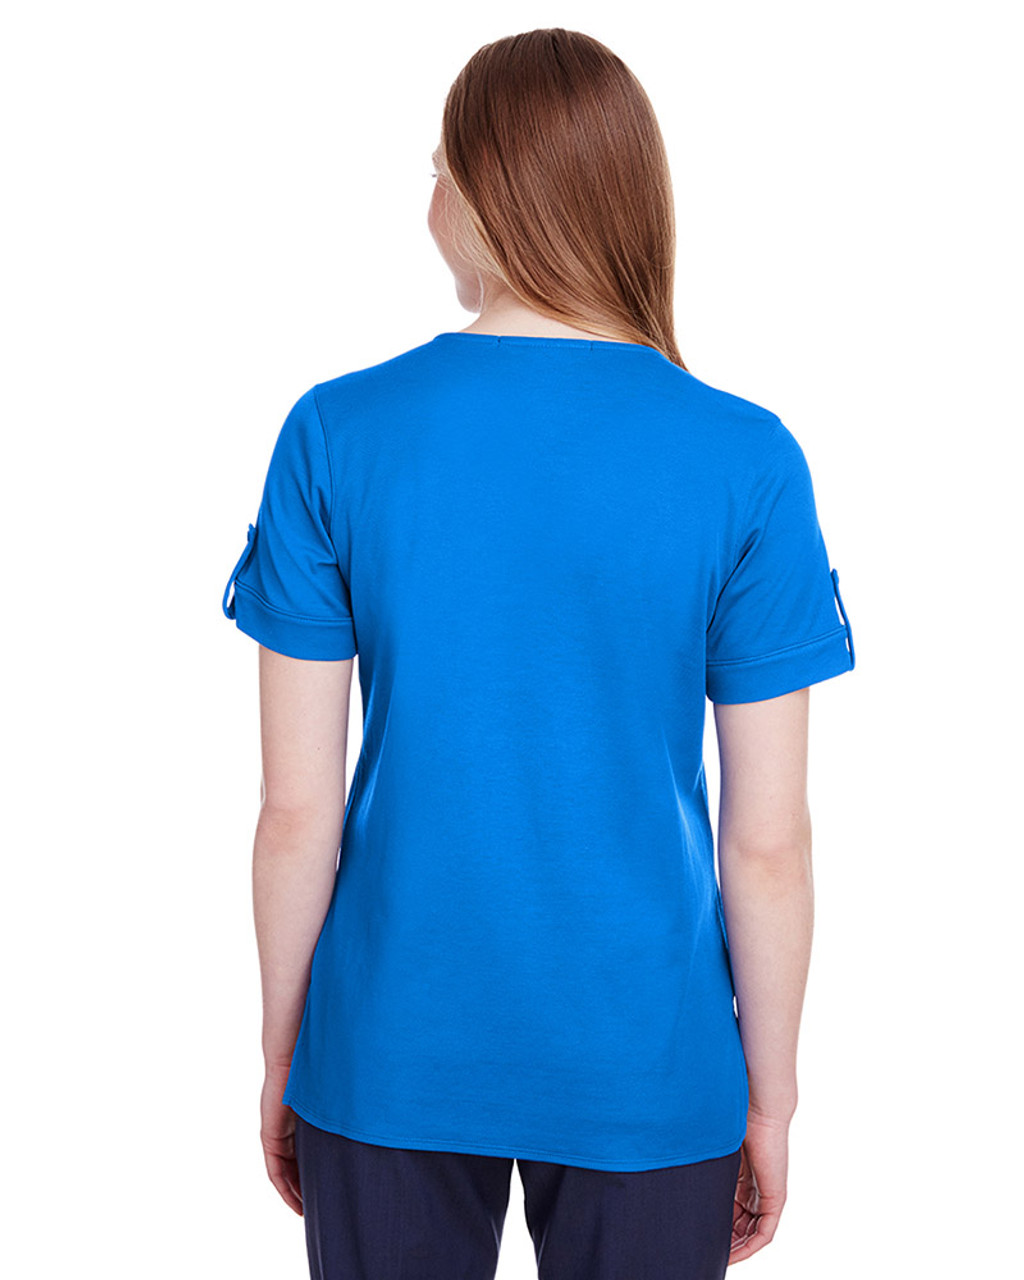 French Blue - back, DG20WB Devon & Jones Ladies' CrownLux Performance™ Plaited Rolled-Sleeve Top | Blankclothing.ca